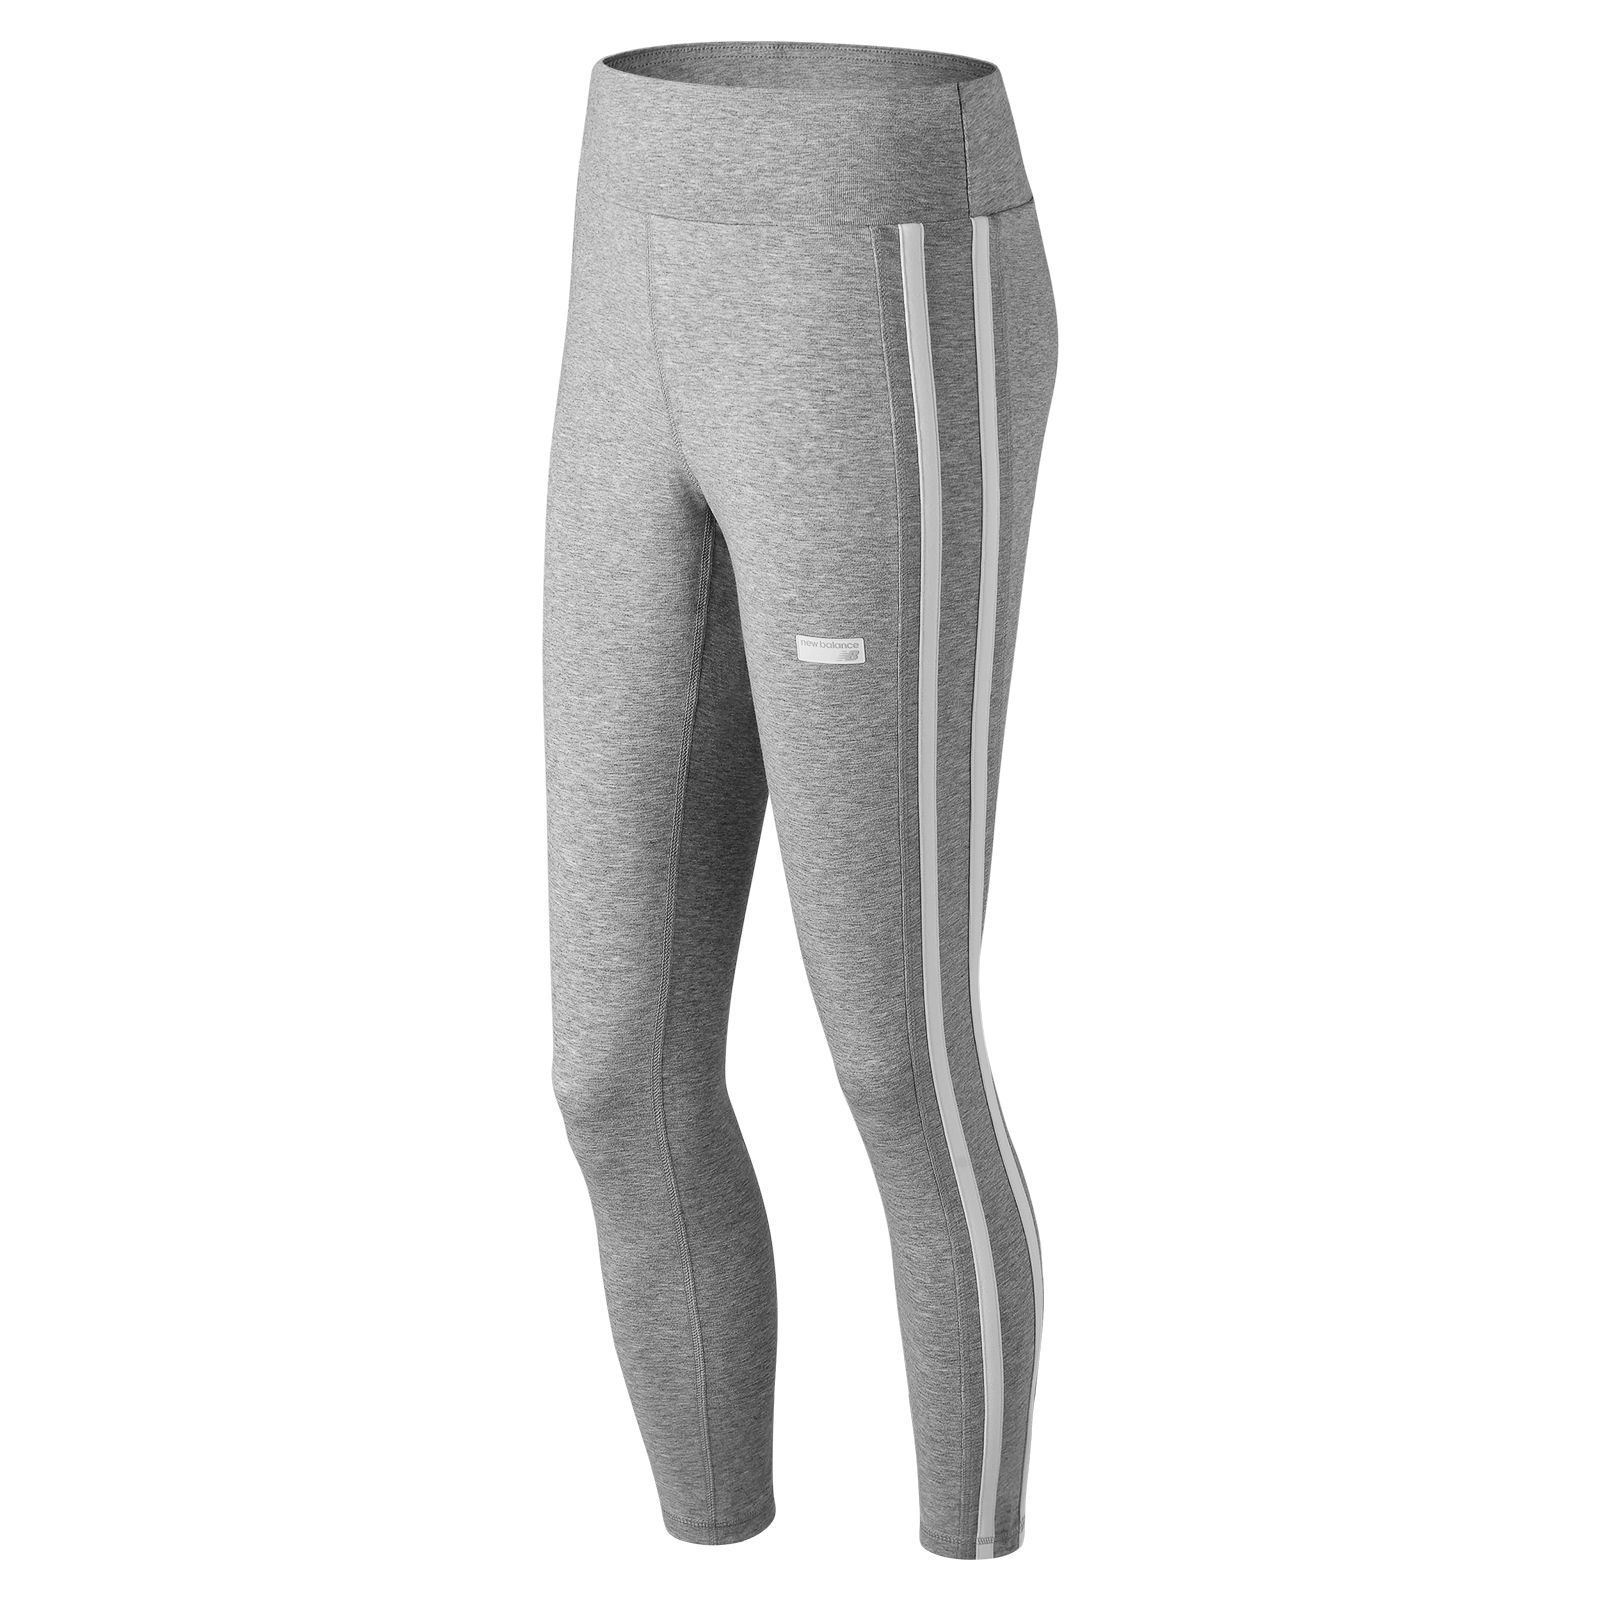 Women's NB Athletics Track Legging